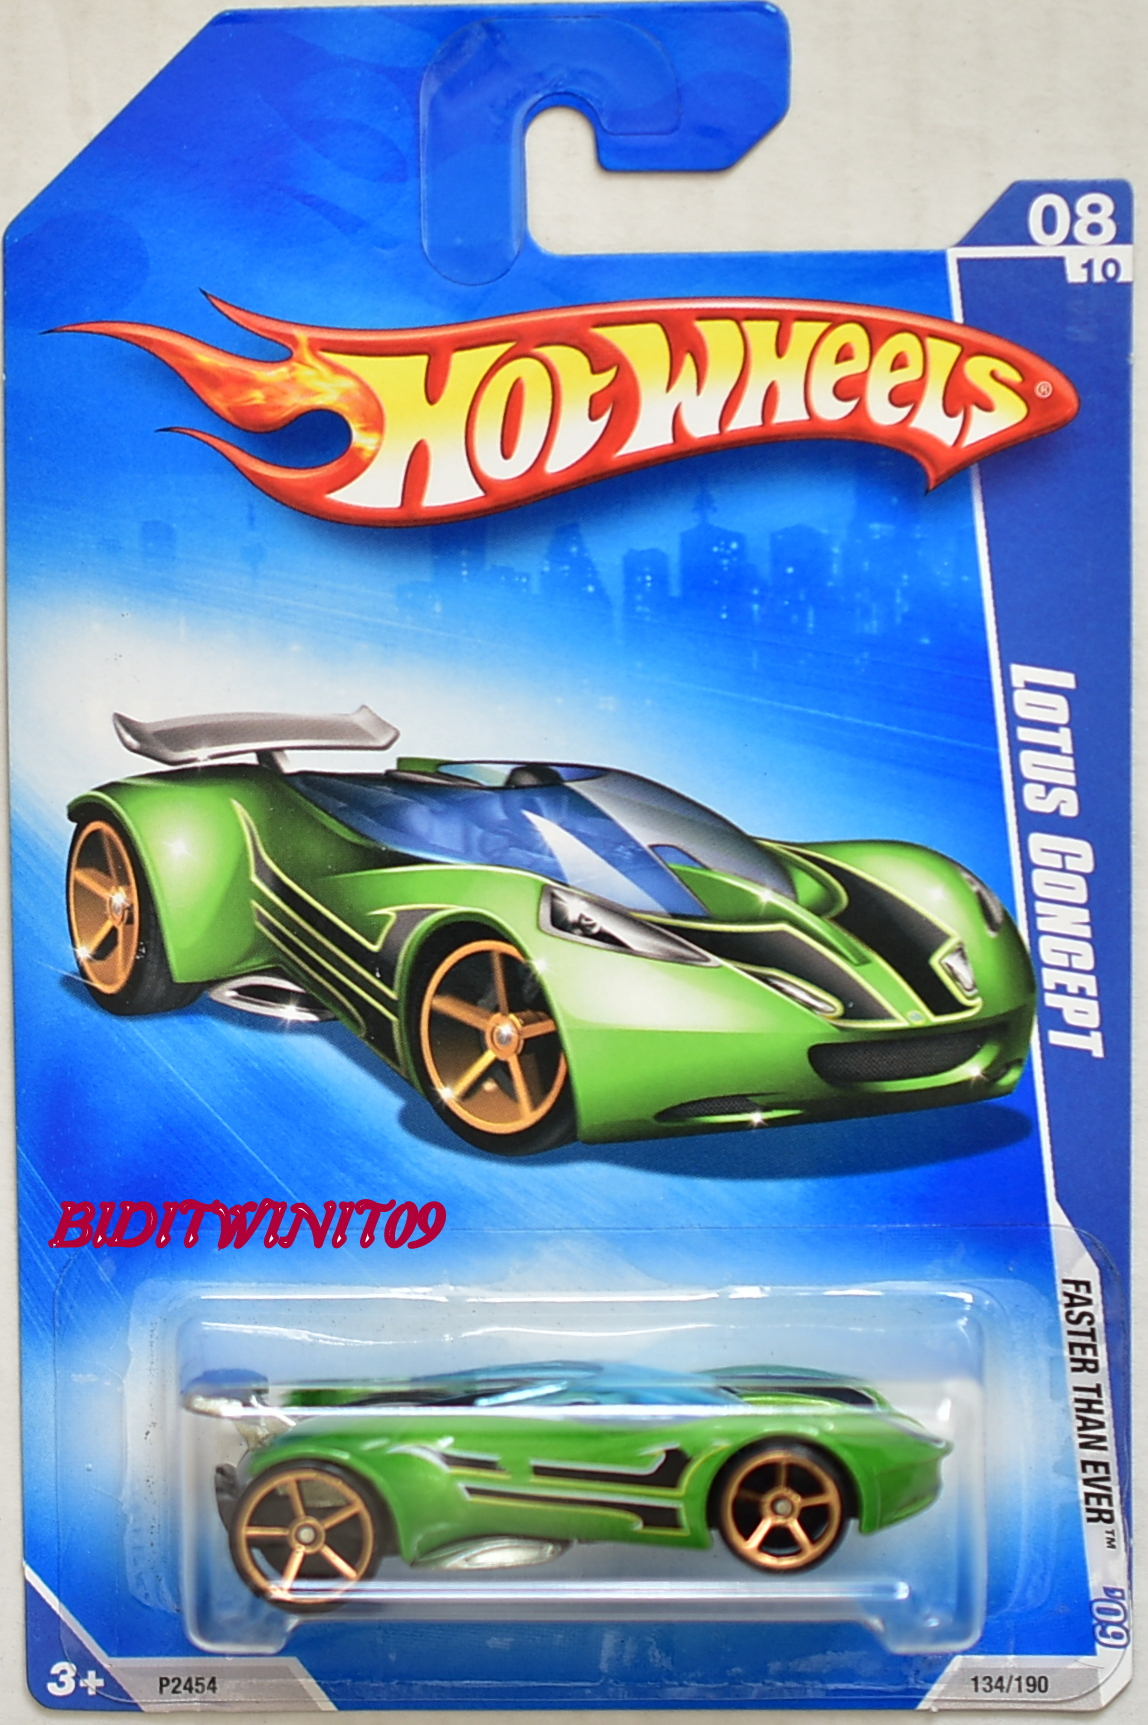 HOT WHEELS 2009 FASTER THAN EVER LOTUS CONCEPT #08/10 GREEN E+